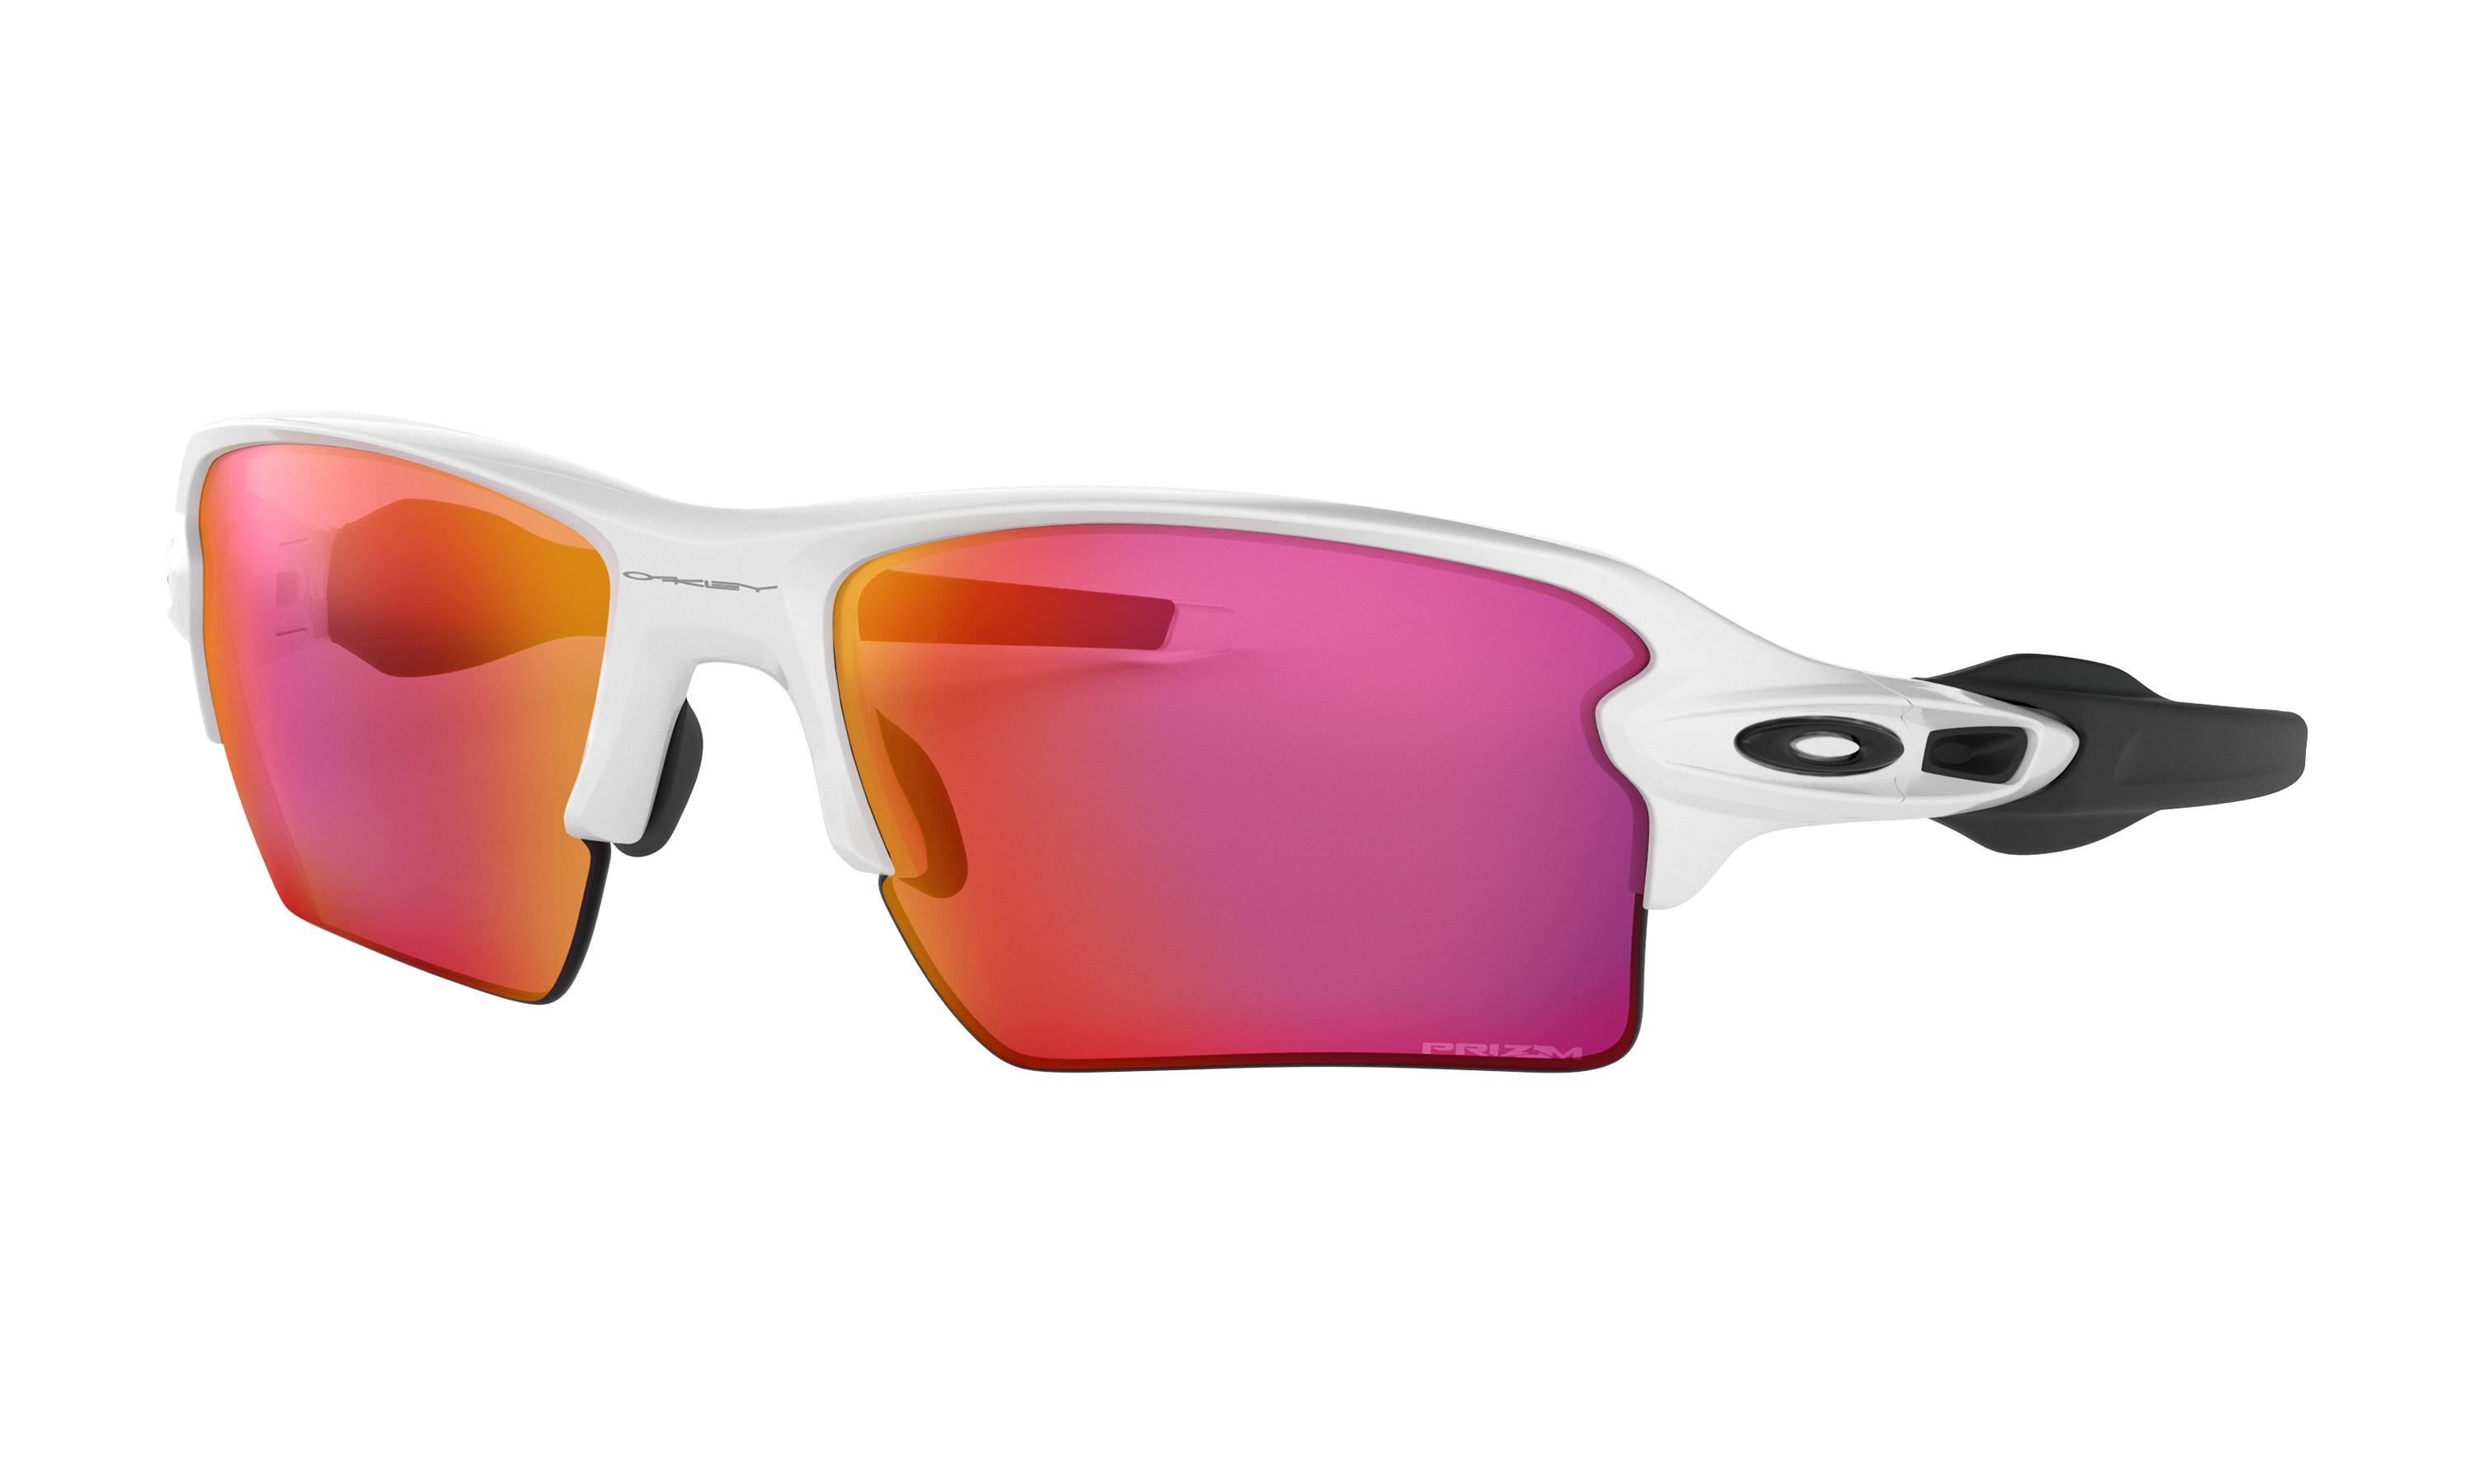 36dd9f28aef7 Oakley® Flak 2.0 XL - PRIZM Prescription Available